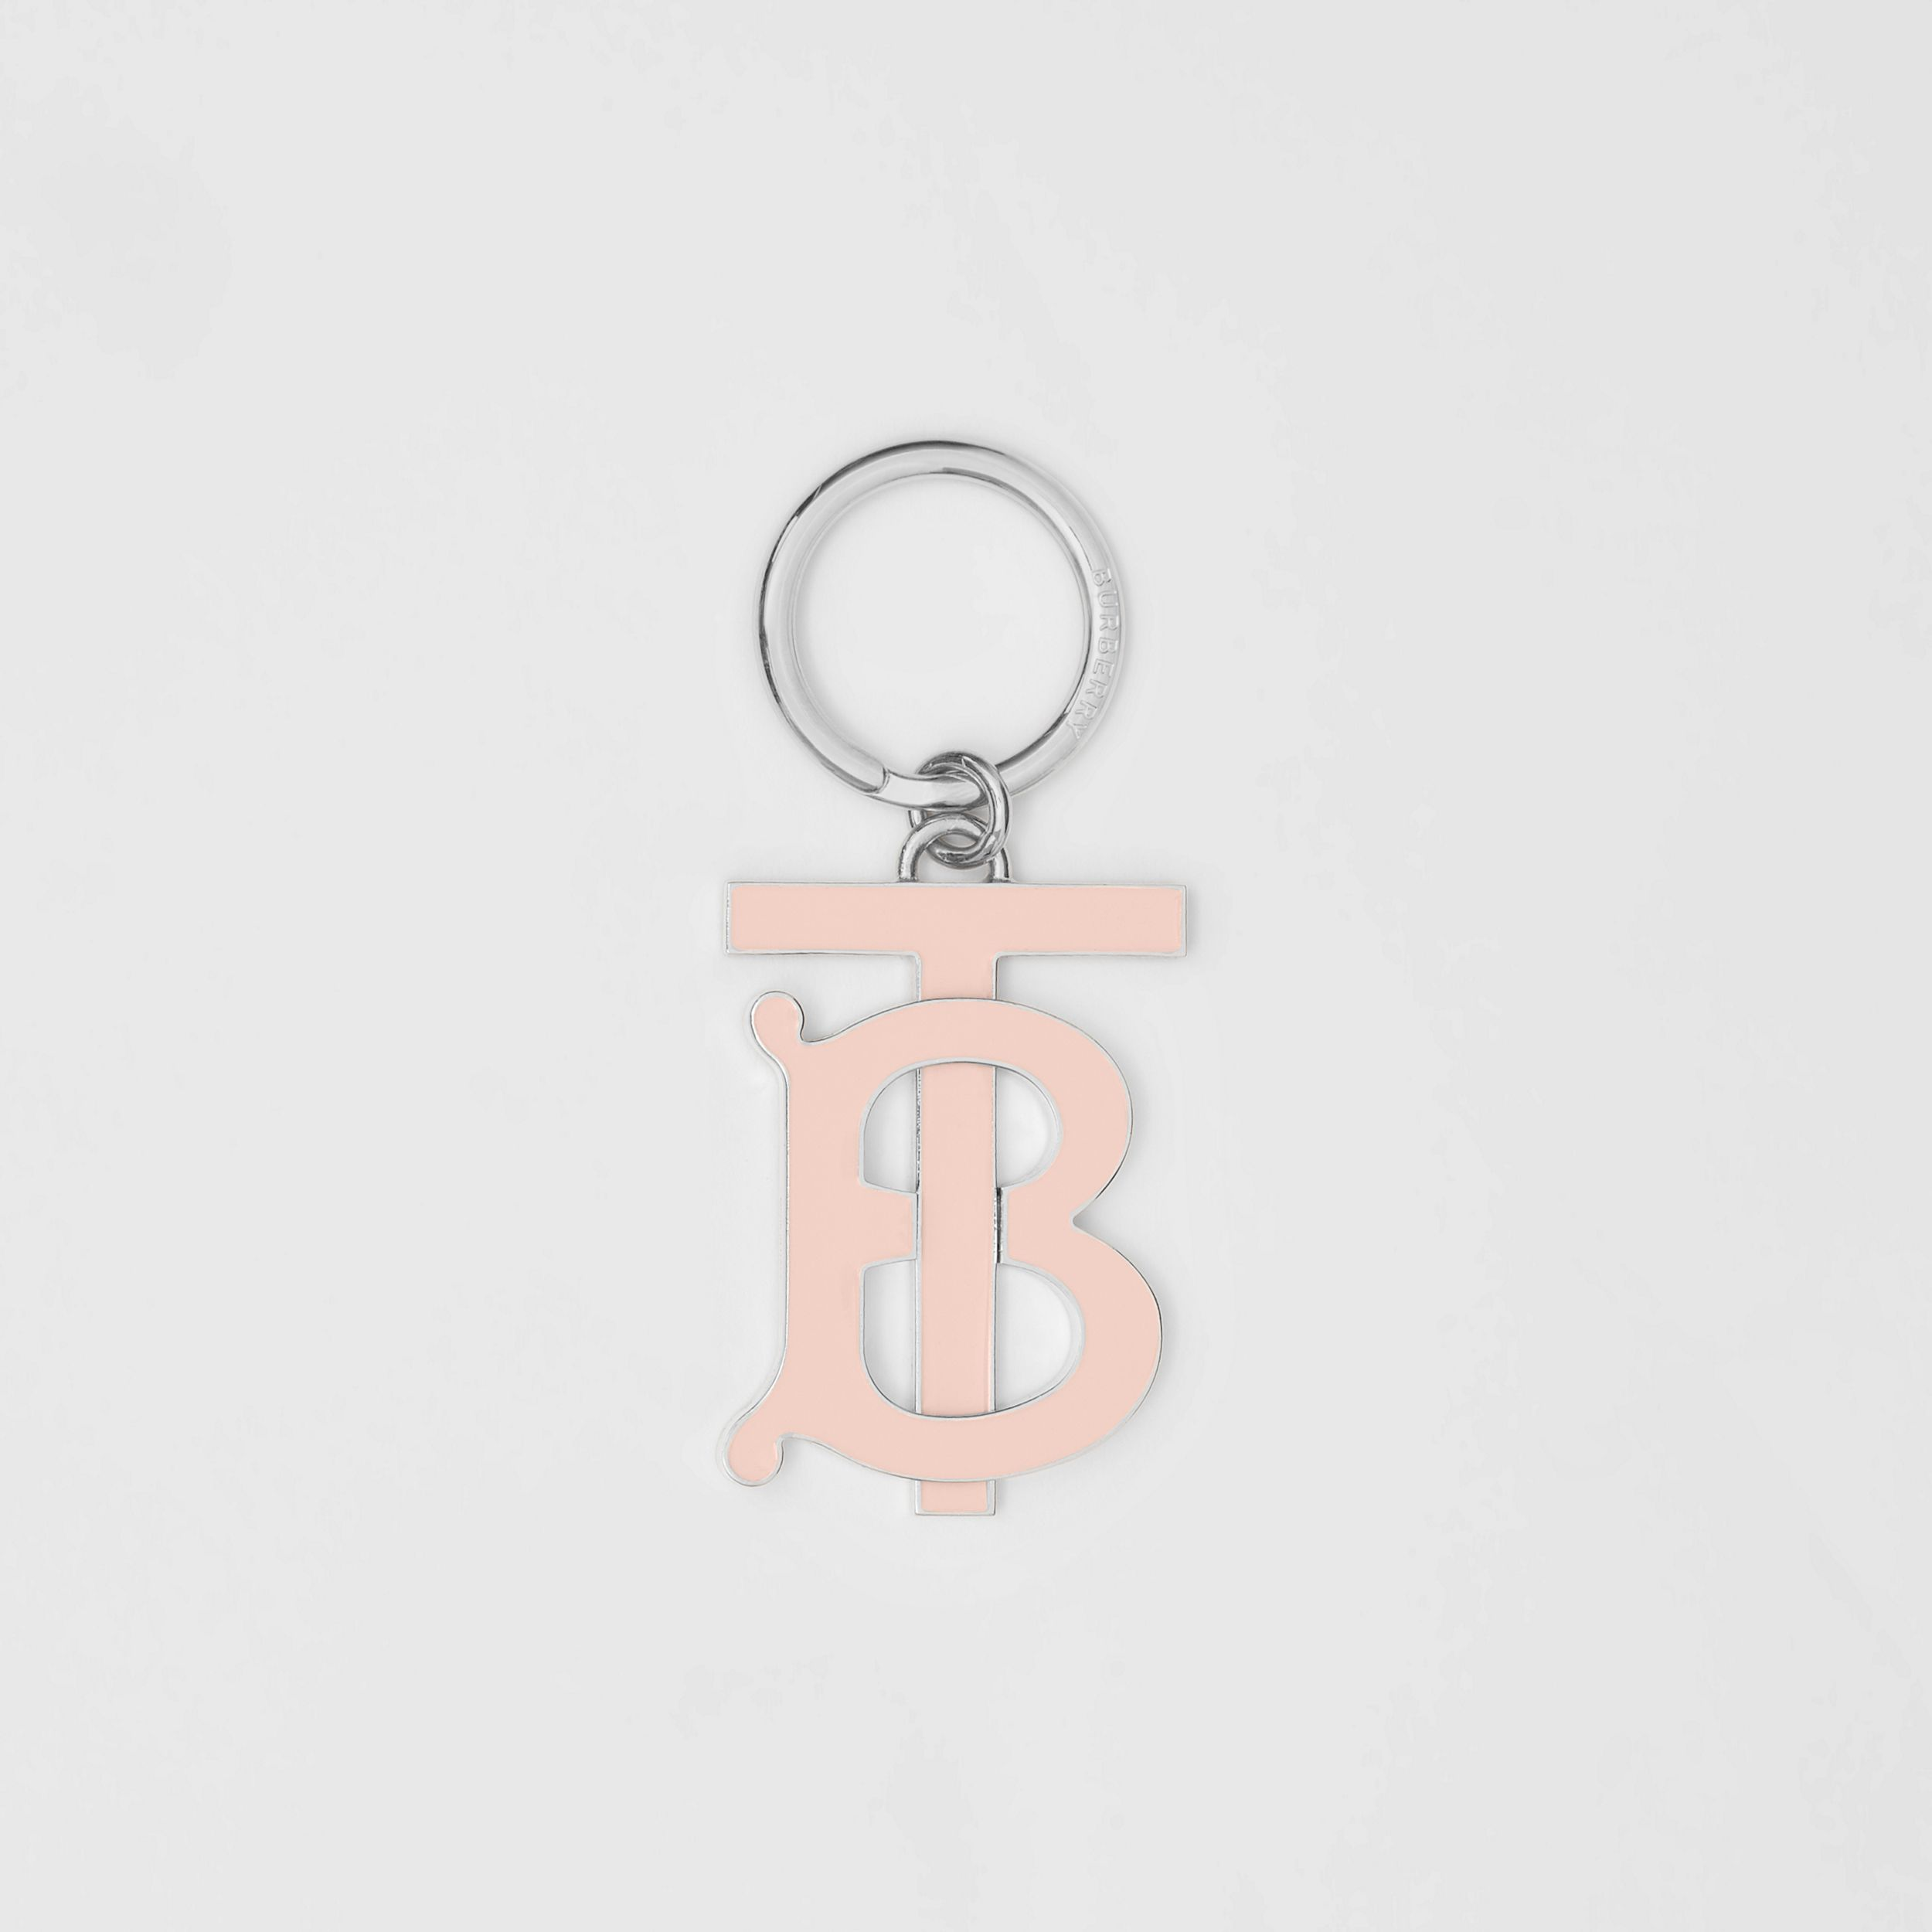 Monogram Motif Palladium-plated Key Charm in Rose Beige - Women | Burberry - 1